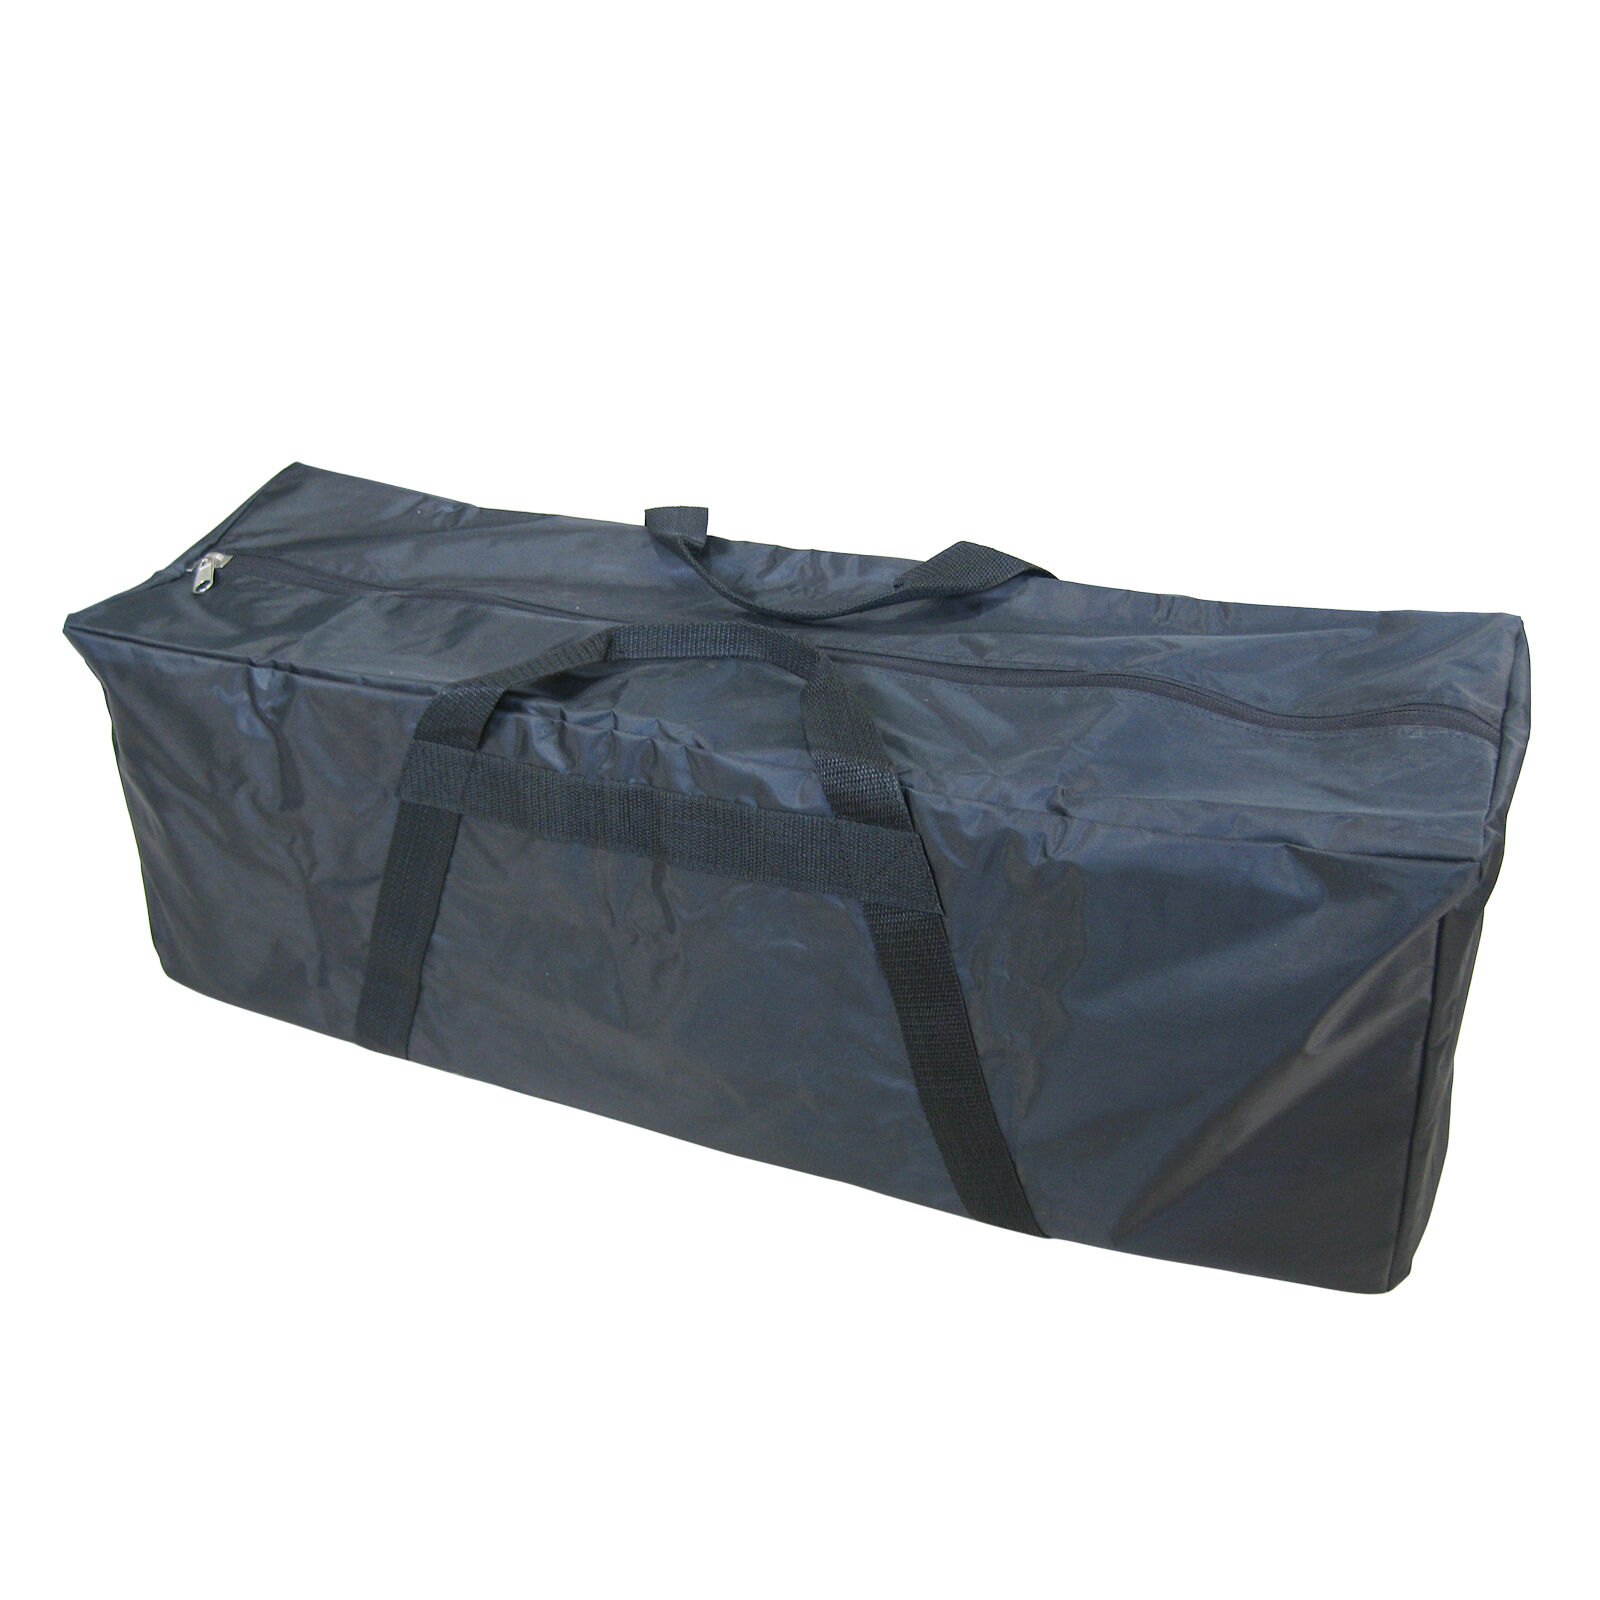 32x12x9 Quot Carrying Bag For Studio Lighting Photography